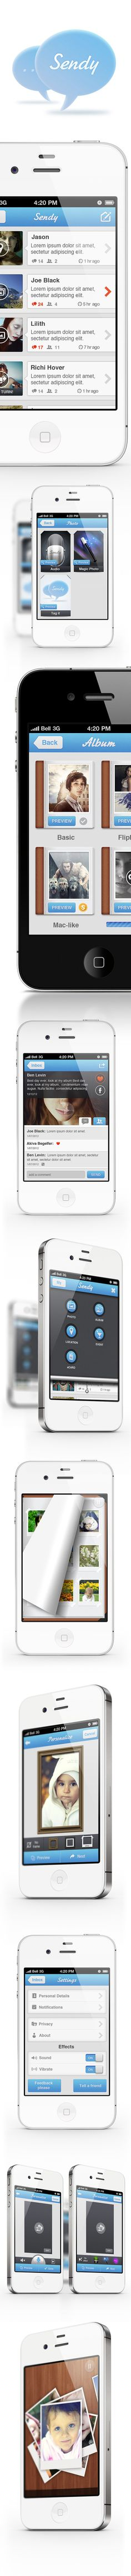 Sendy by Northwood , via Behance   ***   Application to replace you all! mail, twitter, youtube, etc.